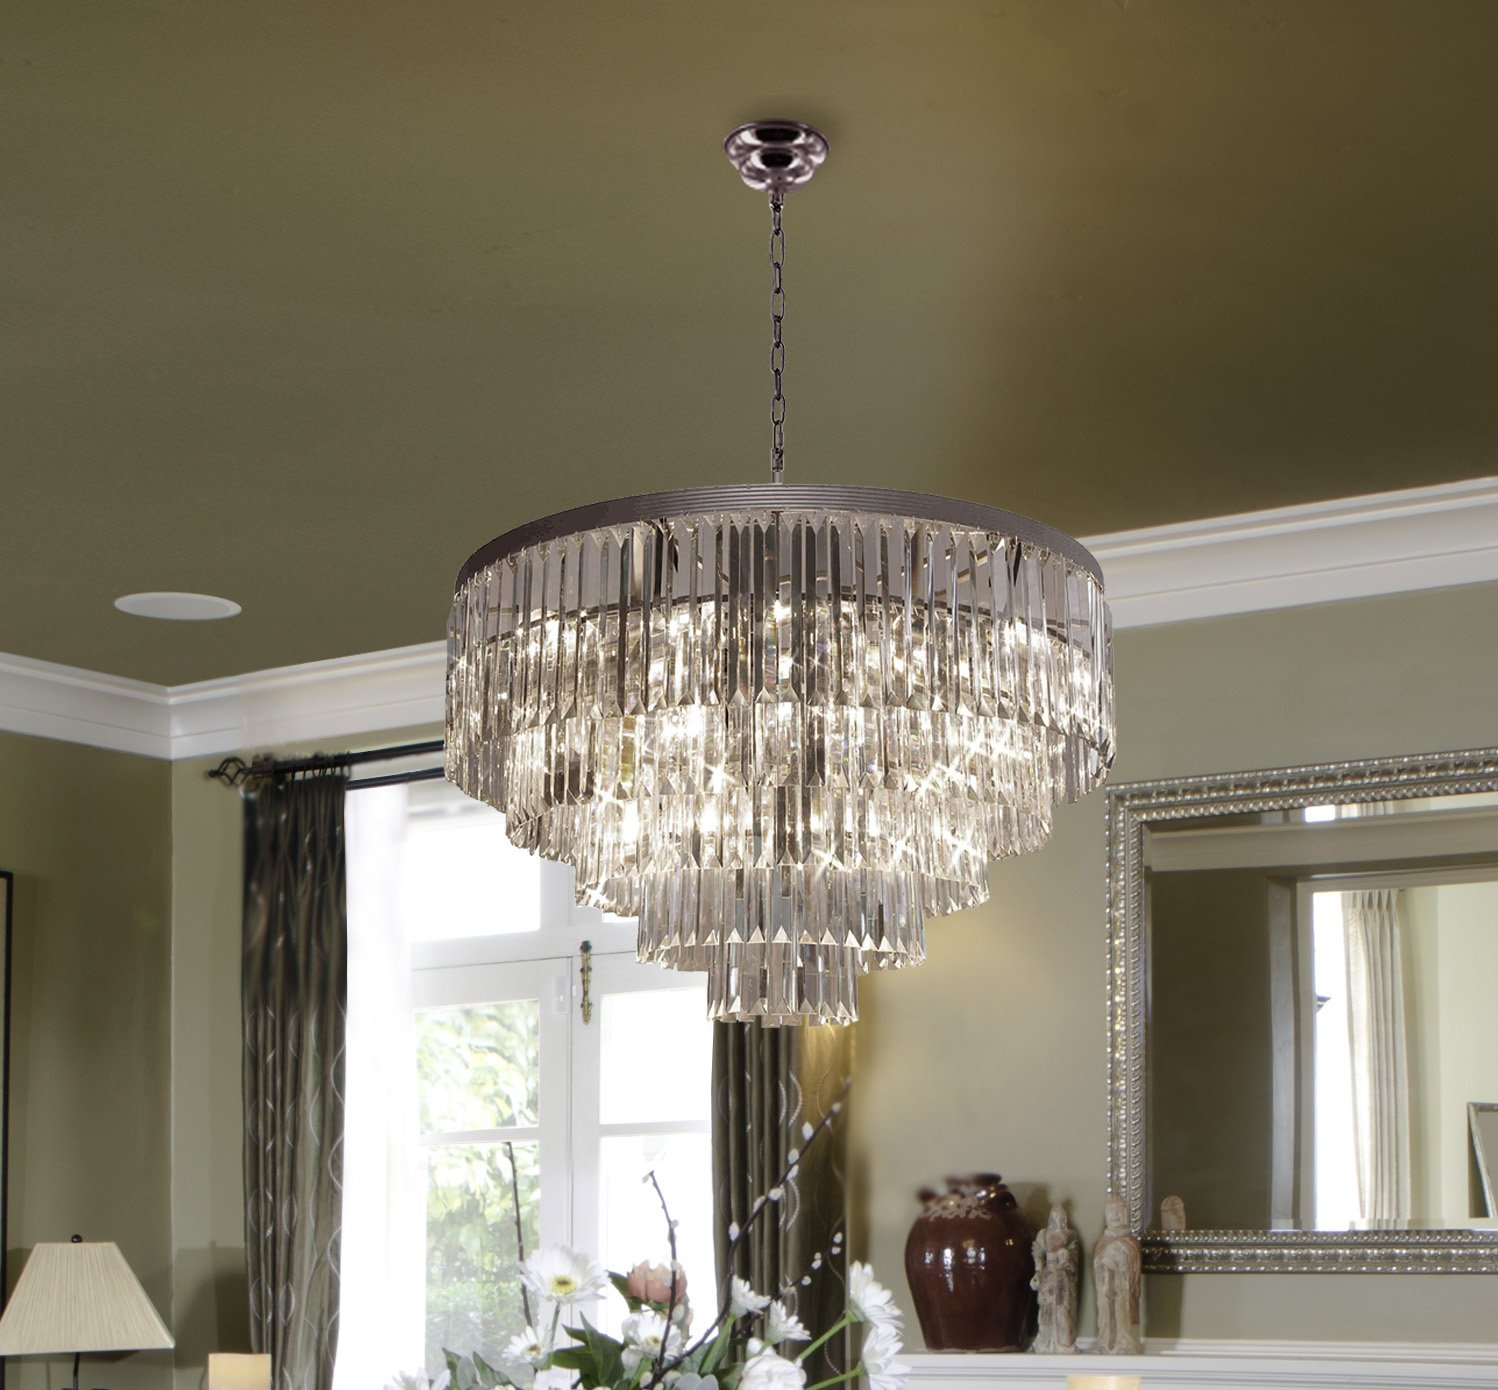 closdurocnoir off chandelier restoration light vanity knockoff of rope inspirational hardware bathroom luxury knock